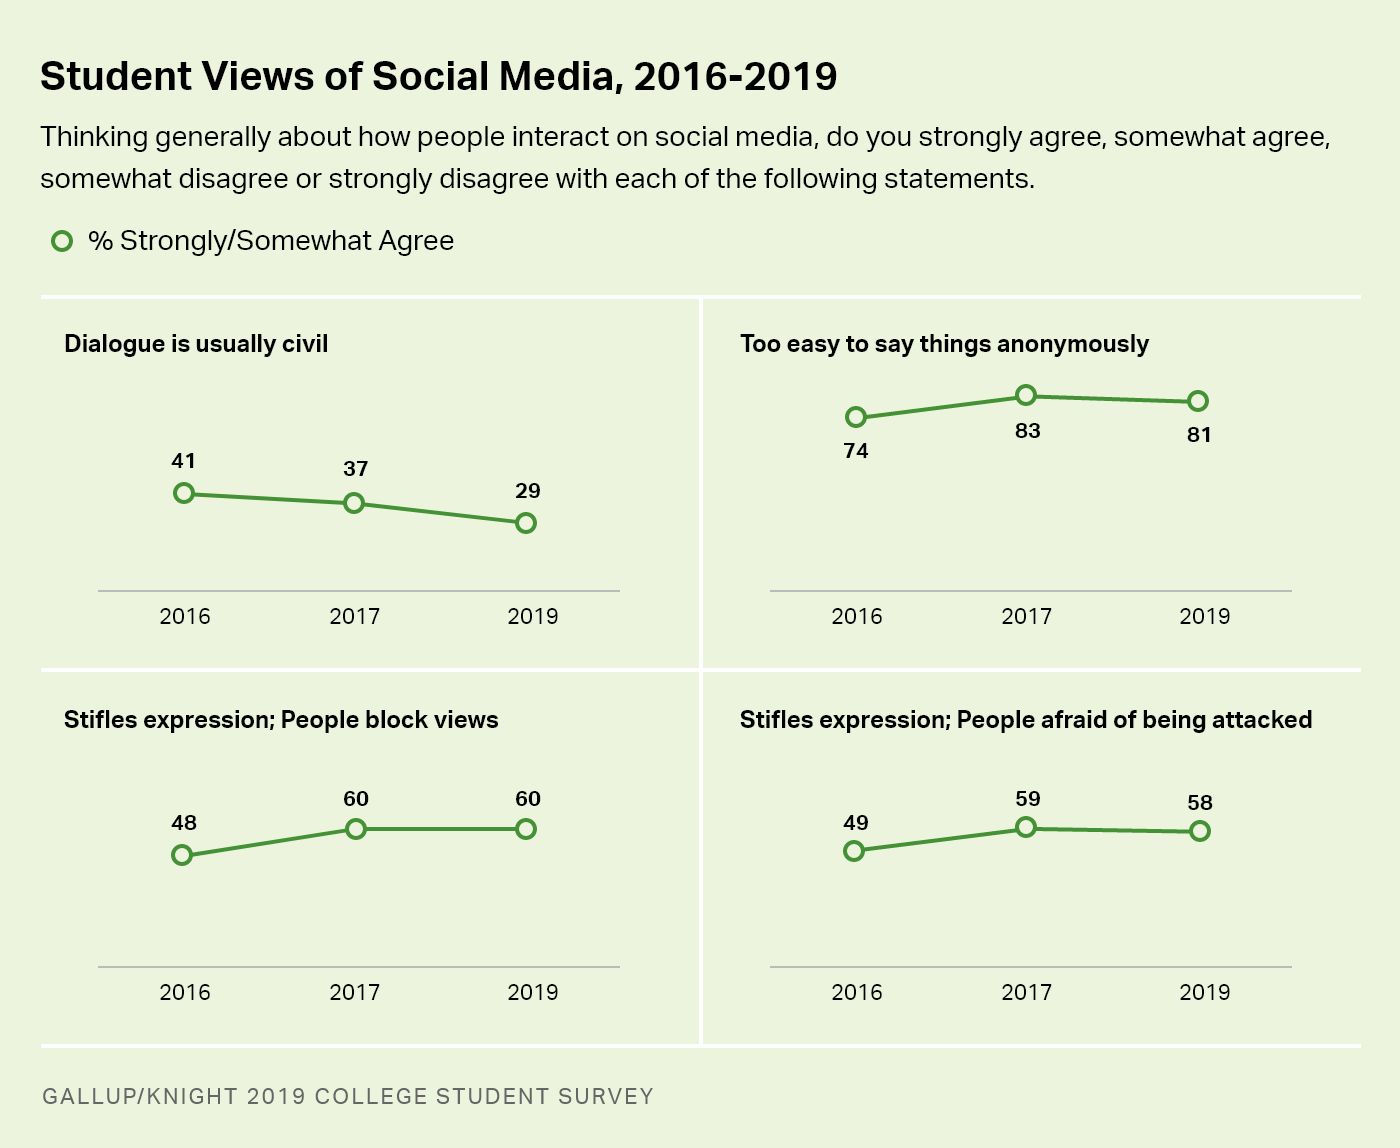 Line charts. College students' views of social media on four measures since 2016.